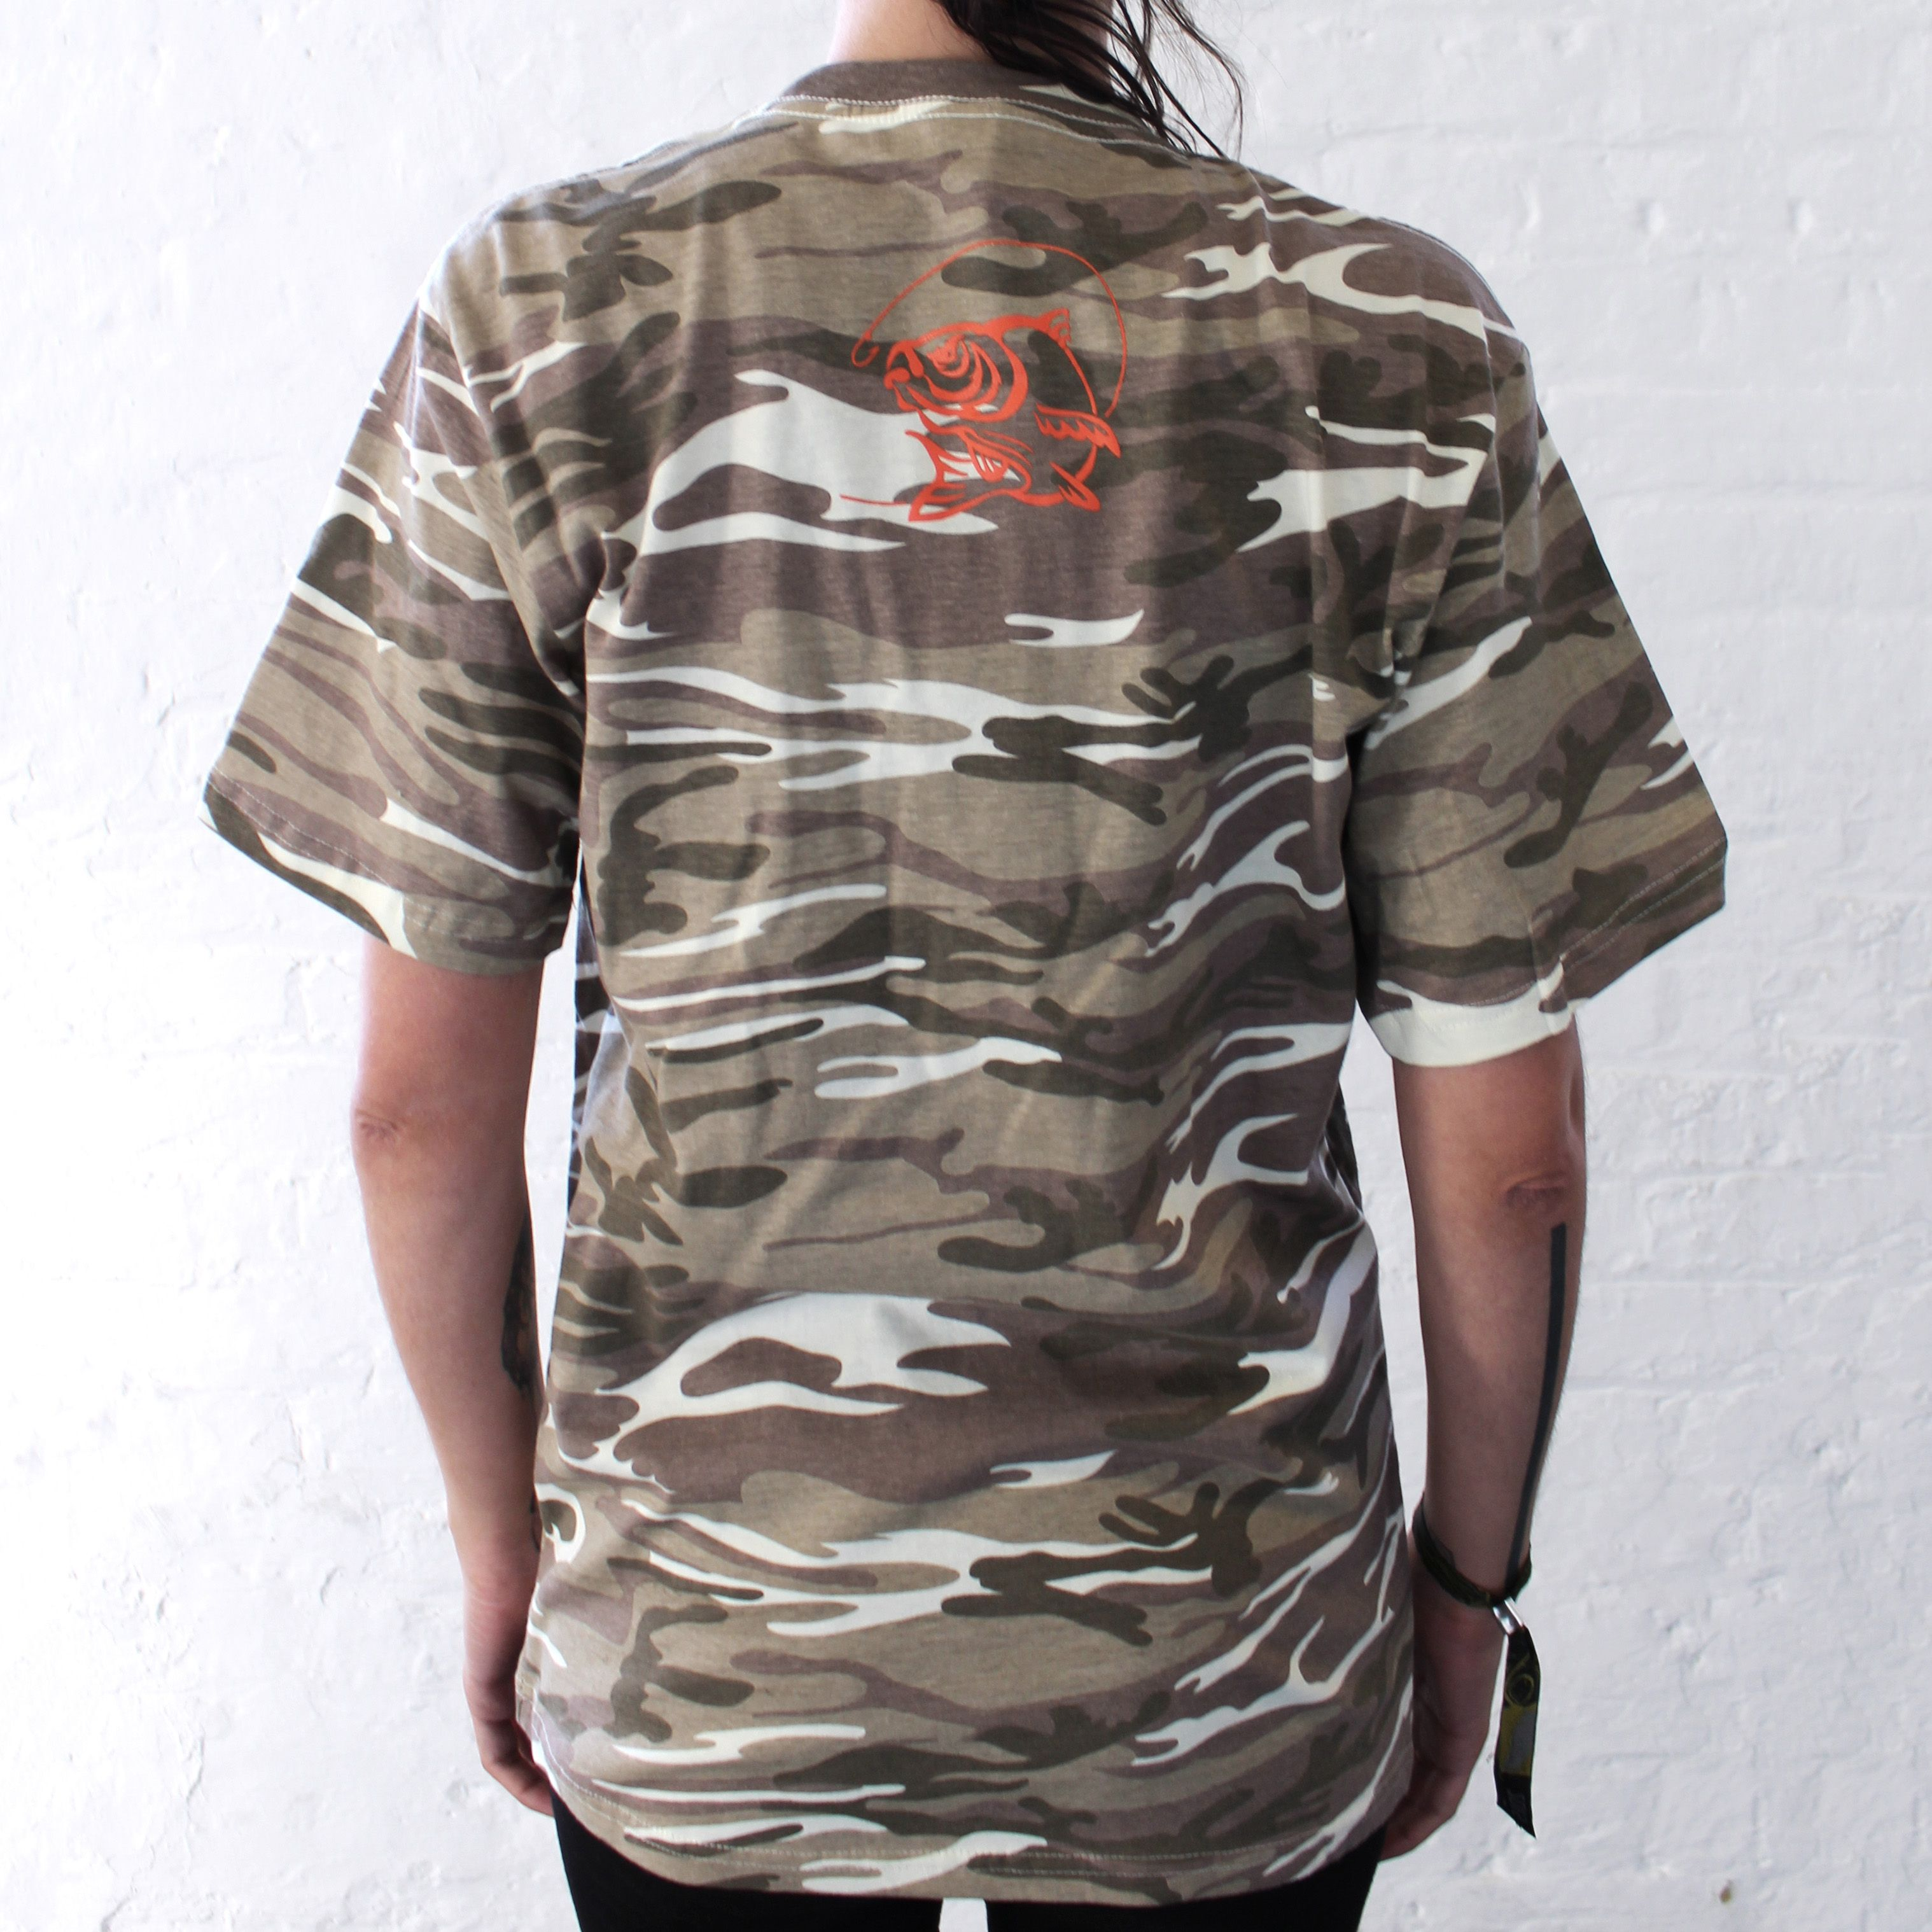 Design your own t shirt military - We Are A Fully Self Sufficient Screen And T Shirt Printing London Based Studio We Also Screen Print On A Variety Of Other Garments As Well As Posters And